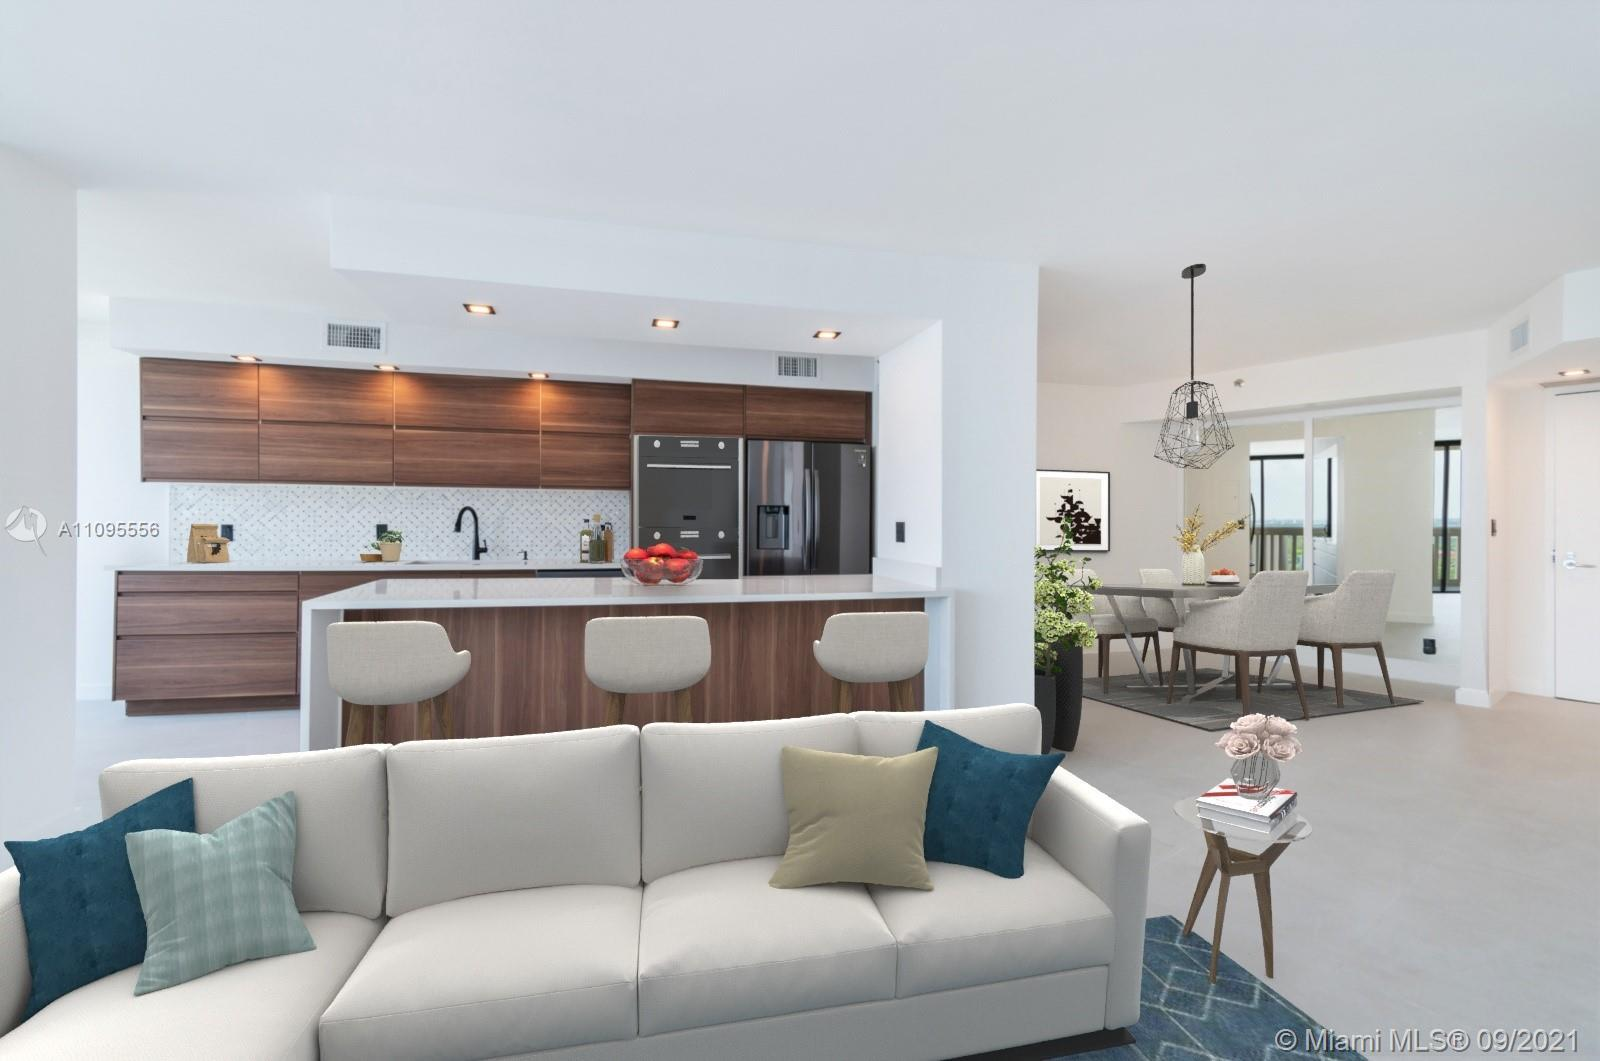 LIVE THE FIVE STAR RESORT LIFESTYLE ON WILLIAMS ISLAND IN THIS COMPLETELY RENOVATED RESIDENCE WITH D